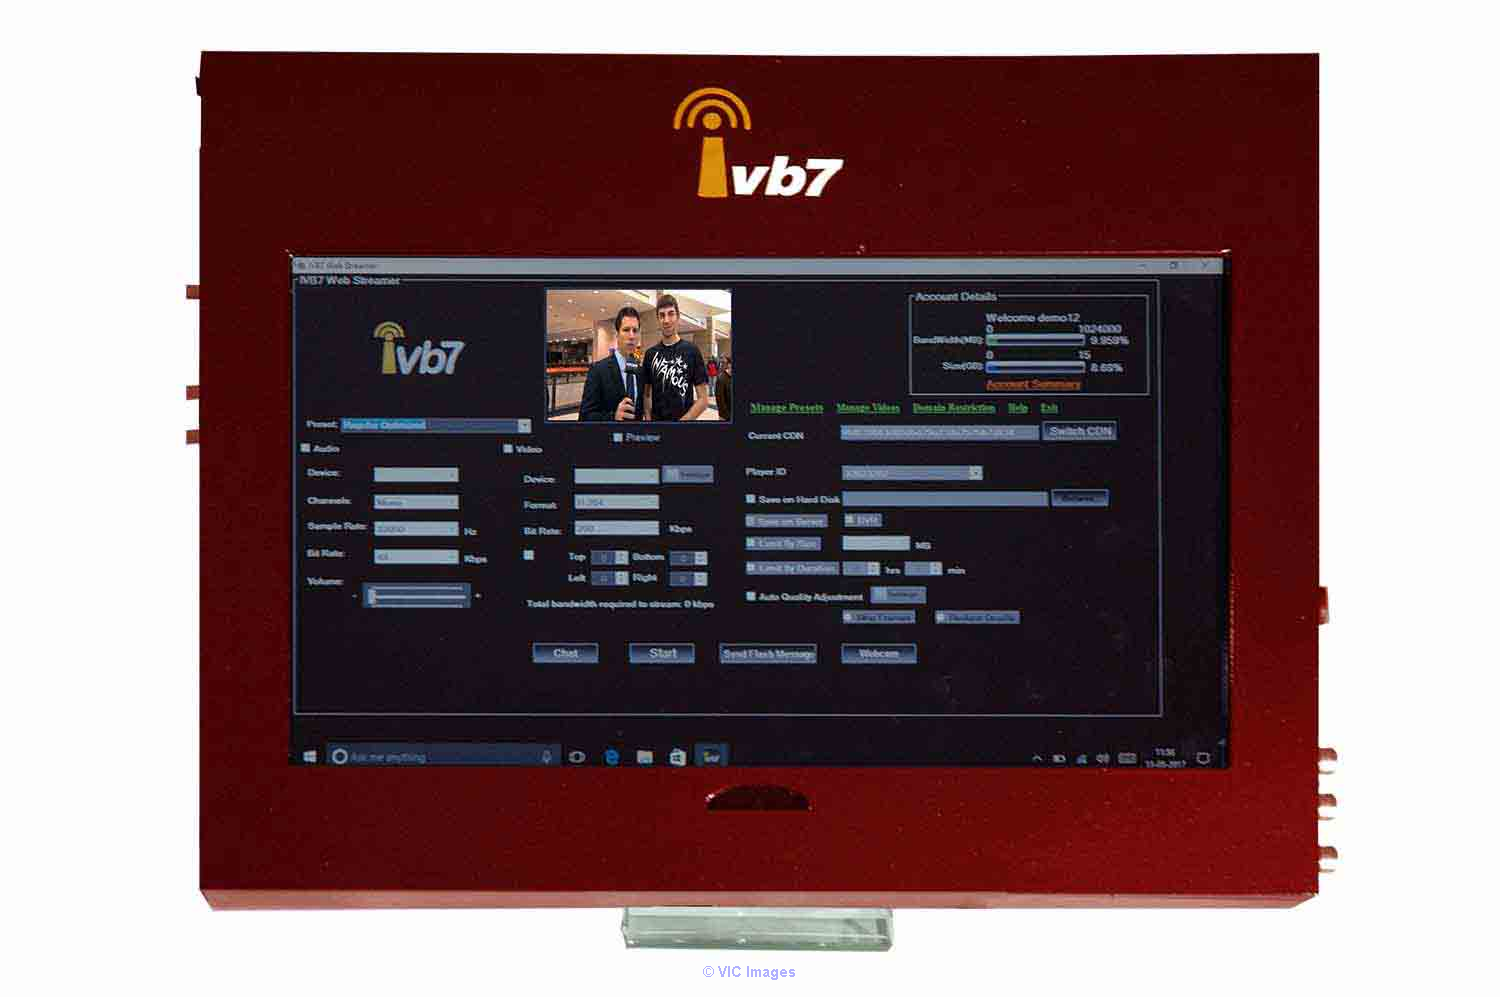 ivb7 LIVEPACK Ottawa, Ontario, Canada Classifieds